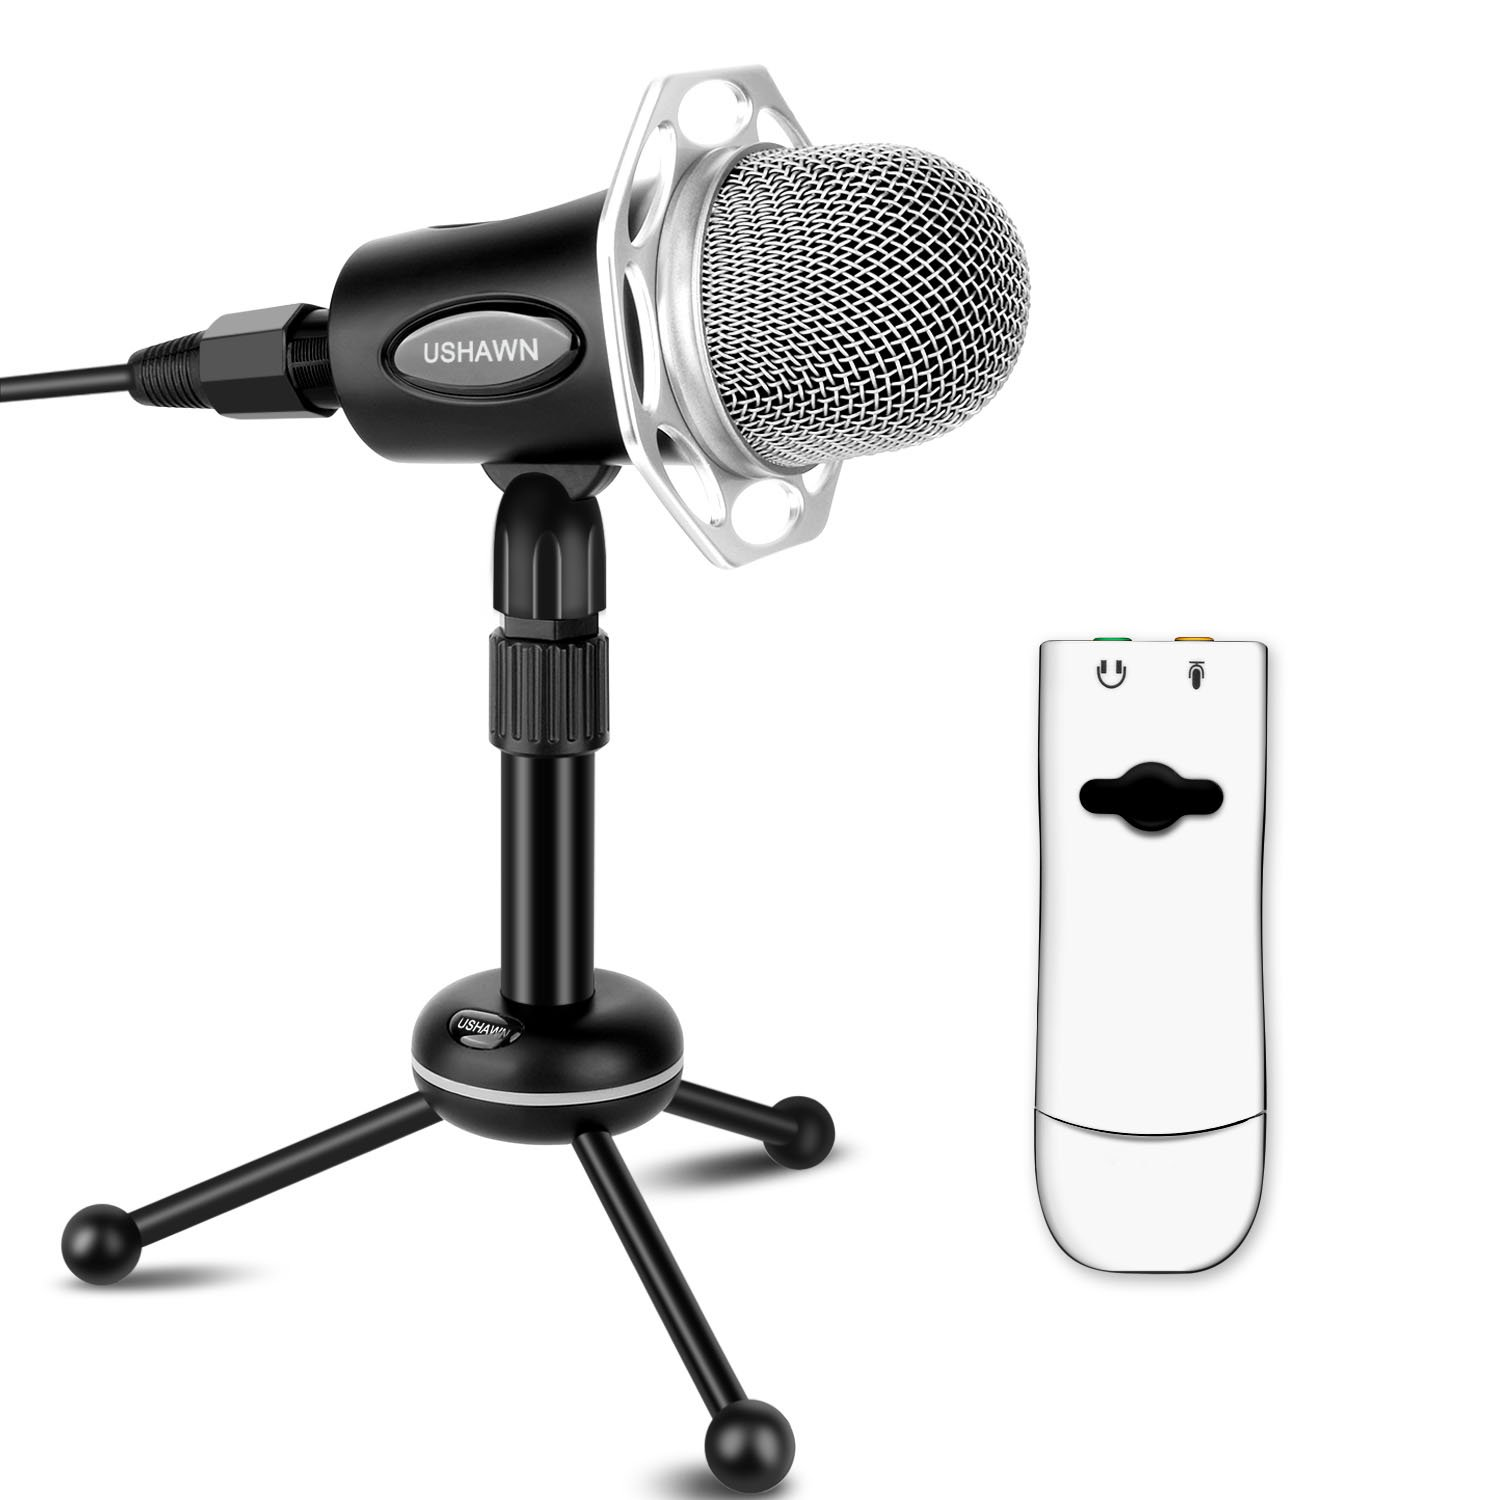 USHAWN Recording Microphone for Mac with 3D External Sound Card and Tabletop Adjustable Desk Stand(Black)